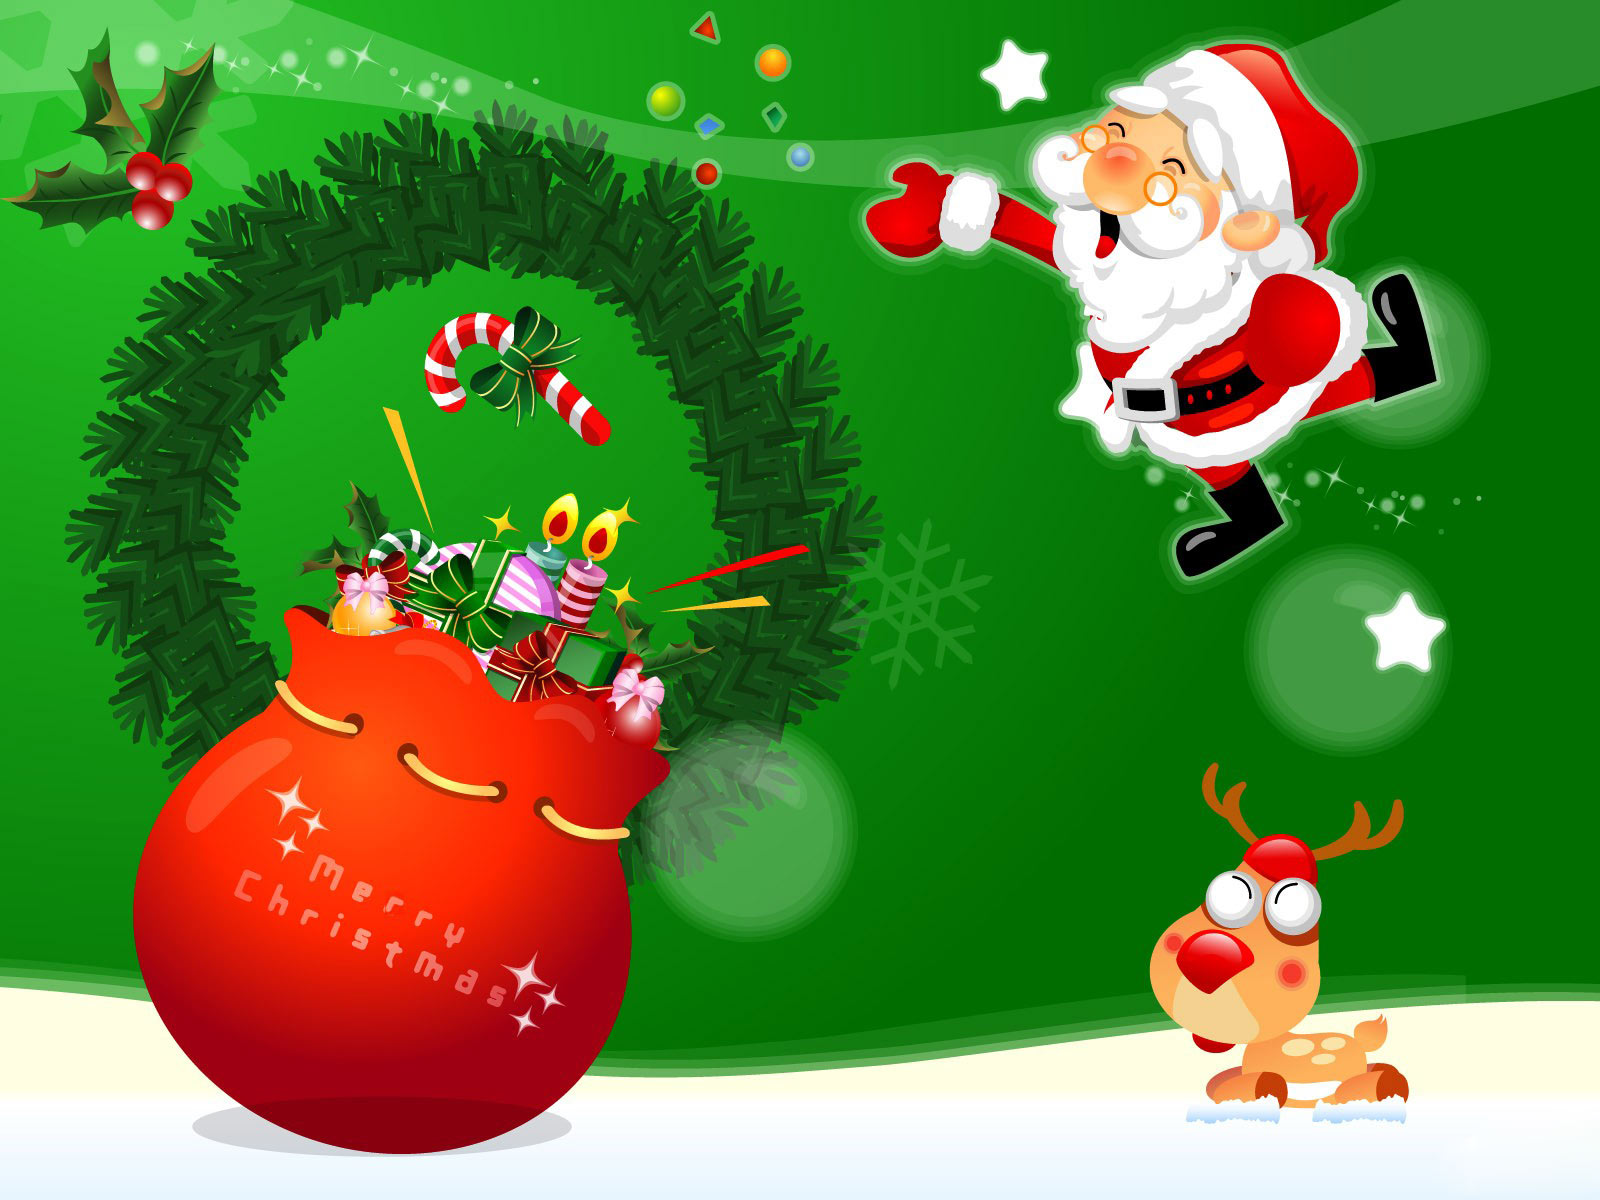 Free Christmas Wallpapers: Christmas Desktop Wallpapers